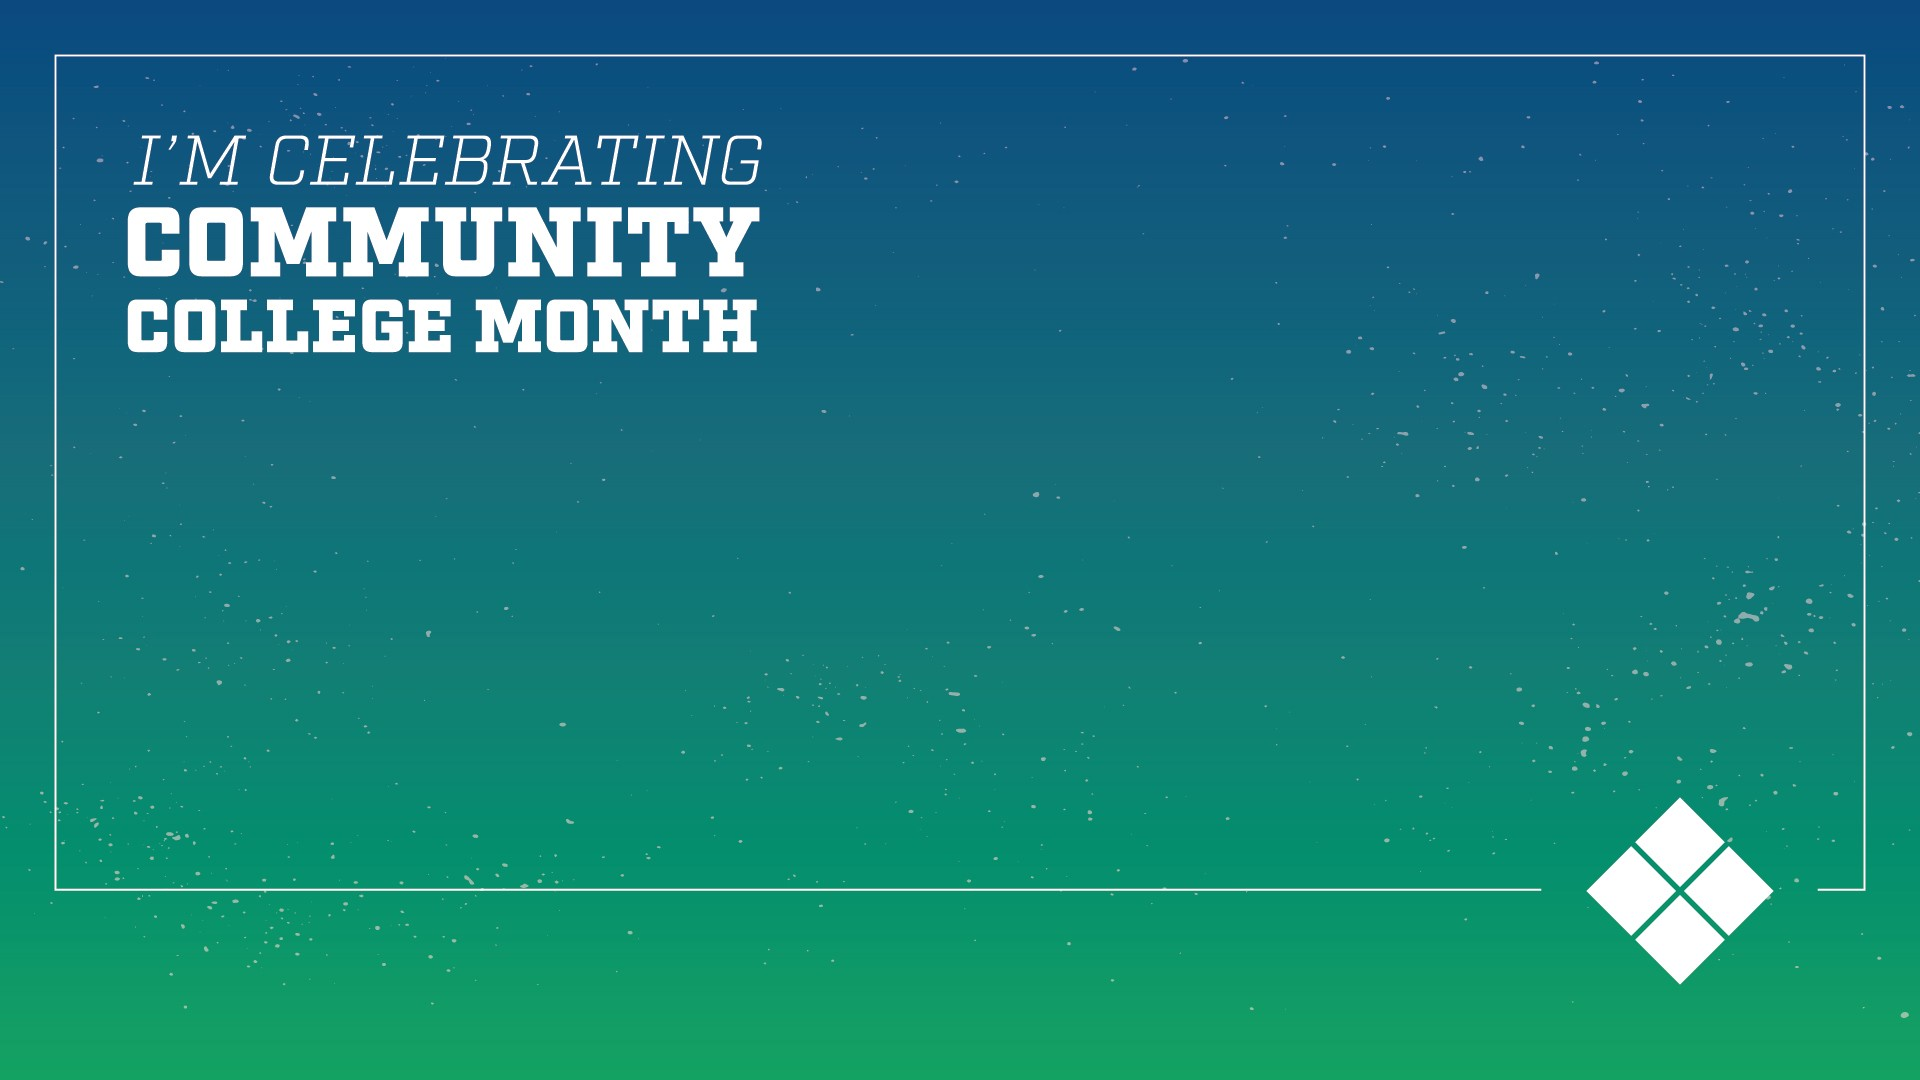 Community College Month Zoom Background Image that says I'm Celebrating Community College Month